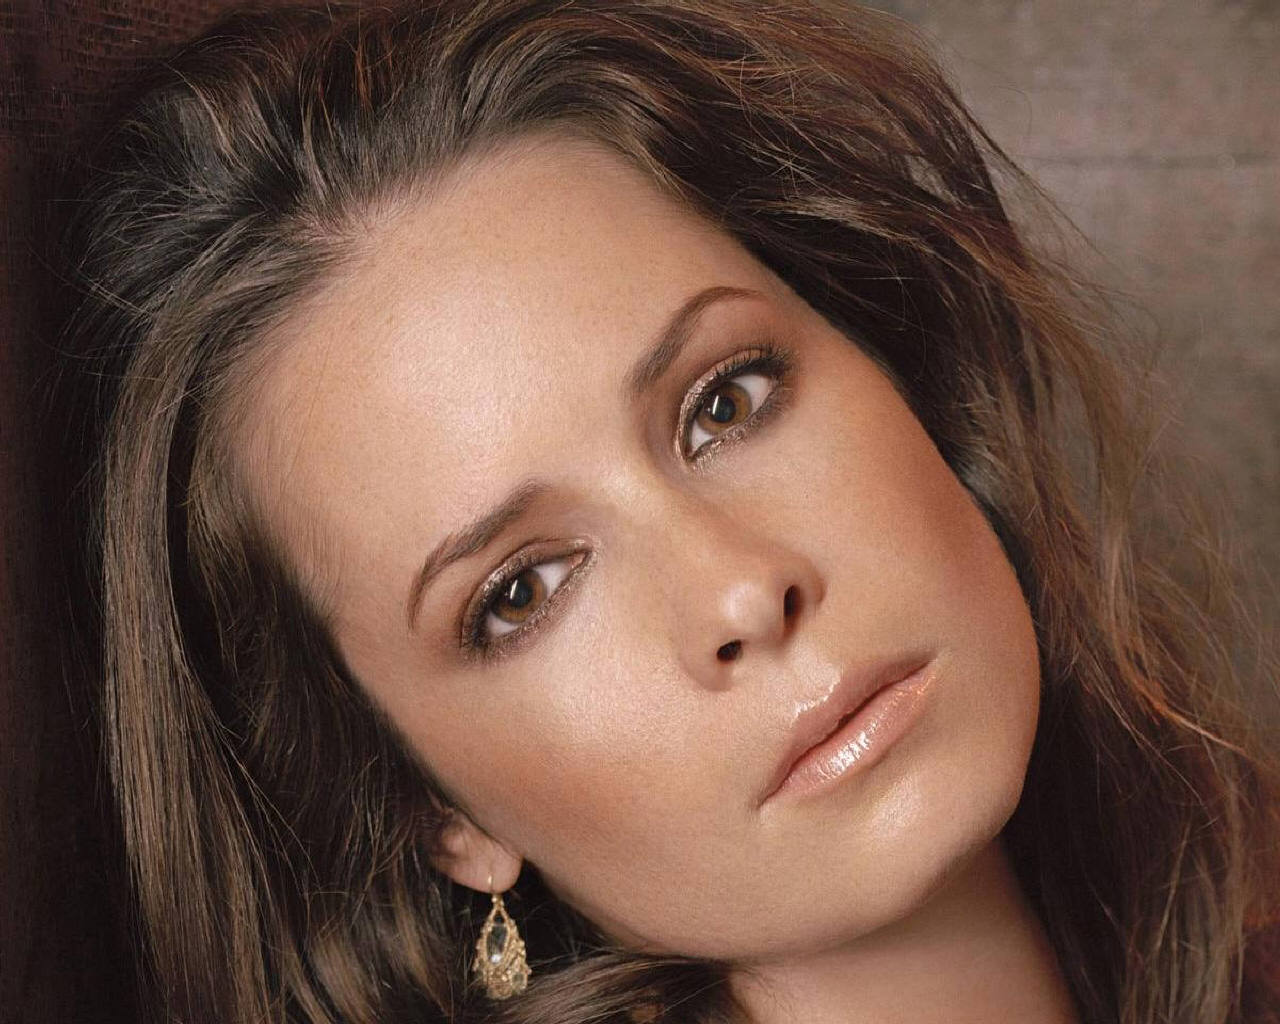 Holly Marie Combs Plastic Surgery Before And After Nose Jobs And Eyebrow